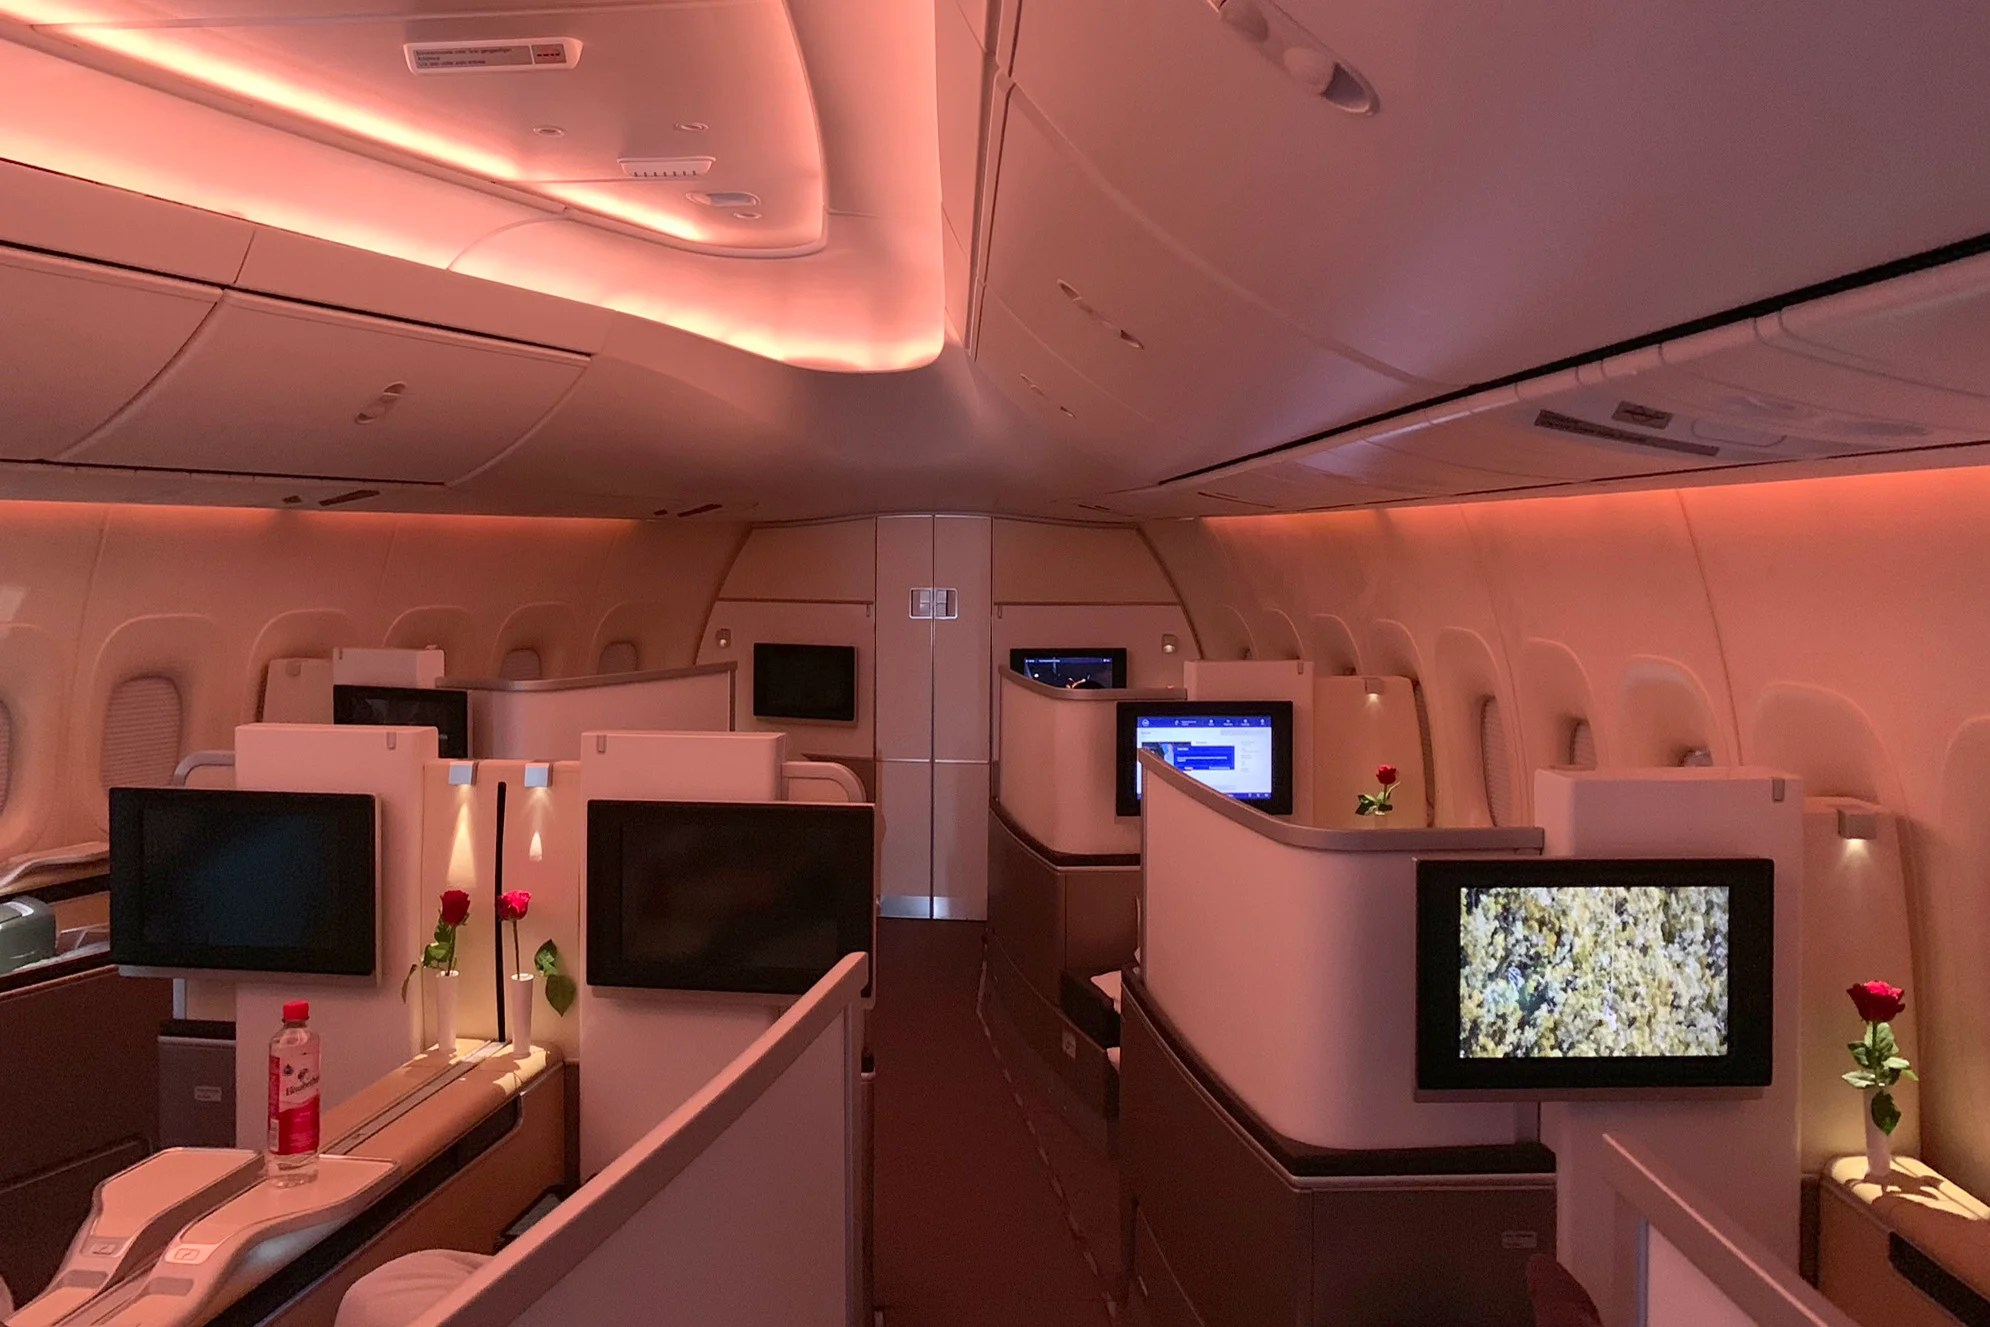 Near Perfection in the Nose: Lufthansa (747-8) in First Class From Frankfurt to Newark